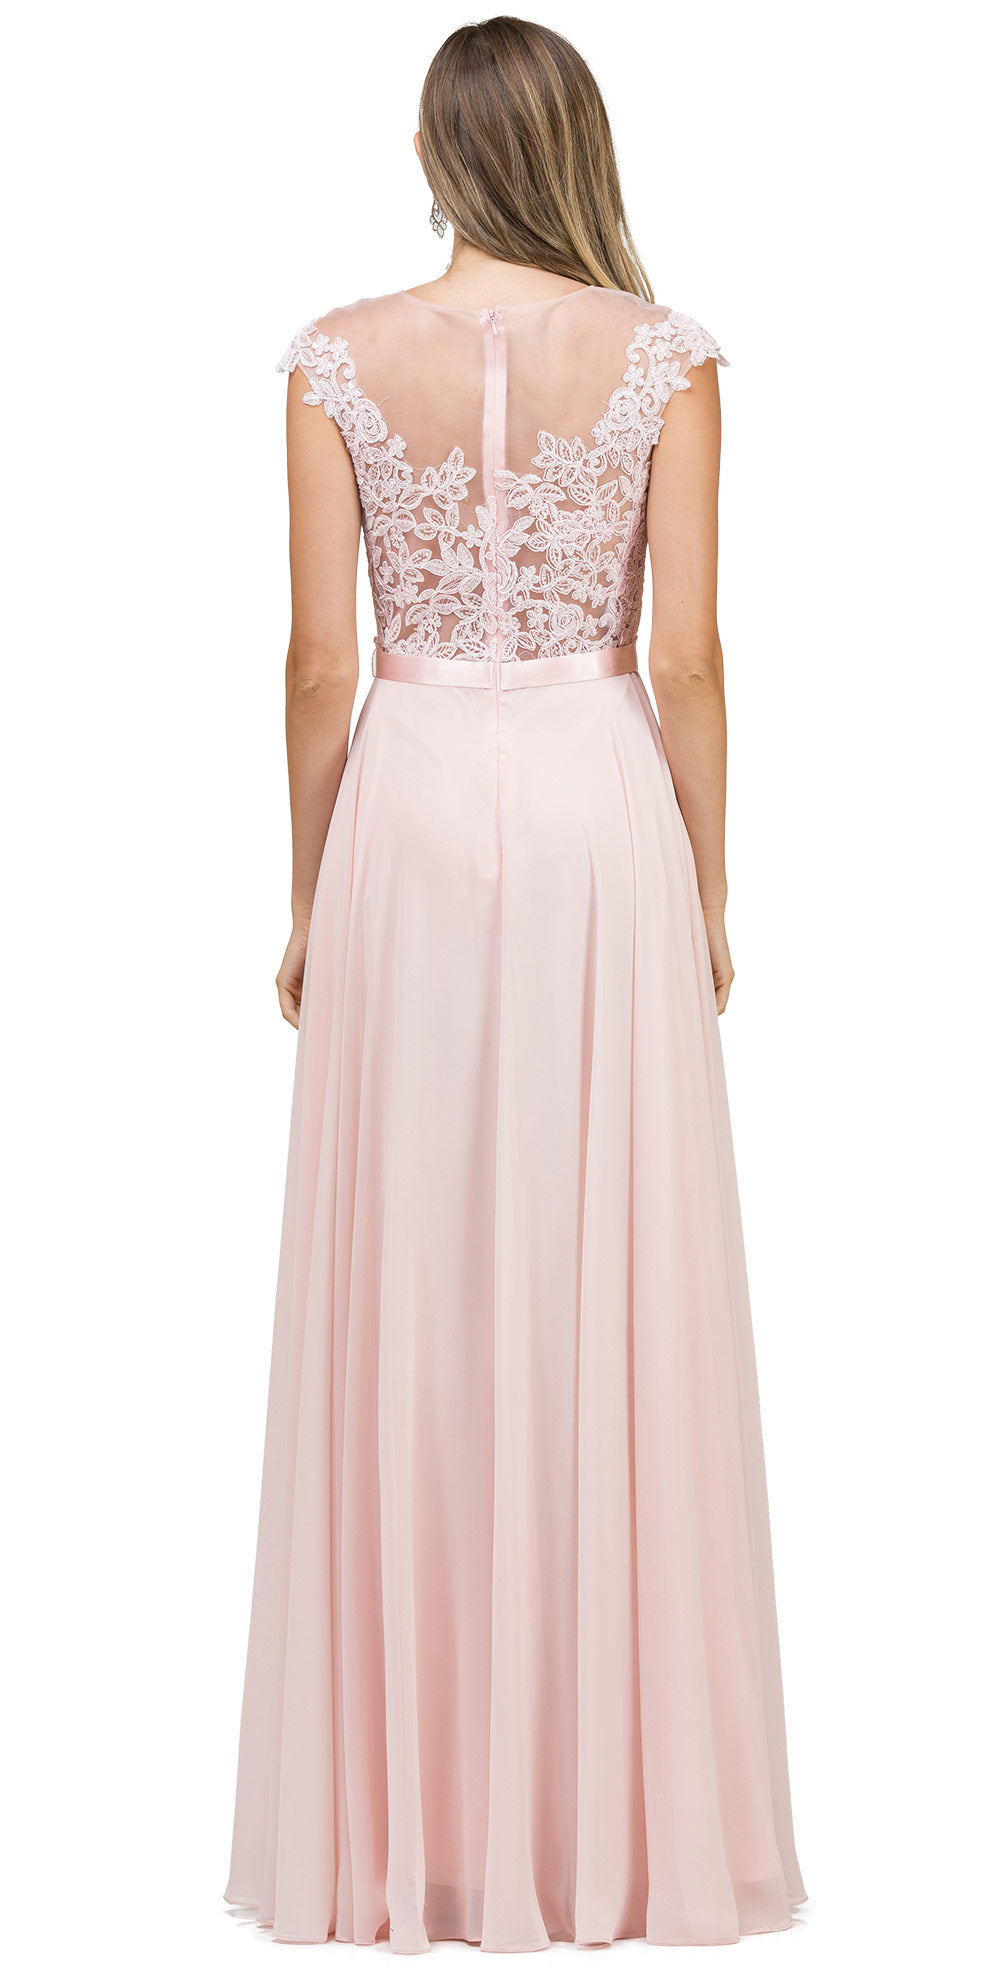 Back image of Embroidered Mesh Bodice Long Chiffon Prom Formal Dress